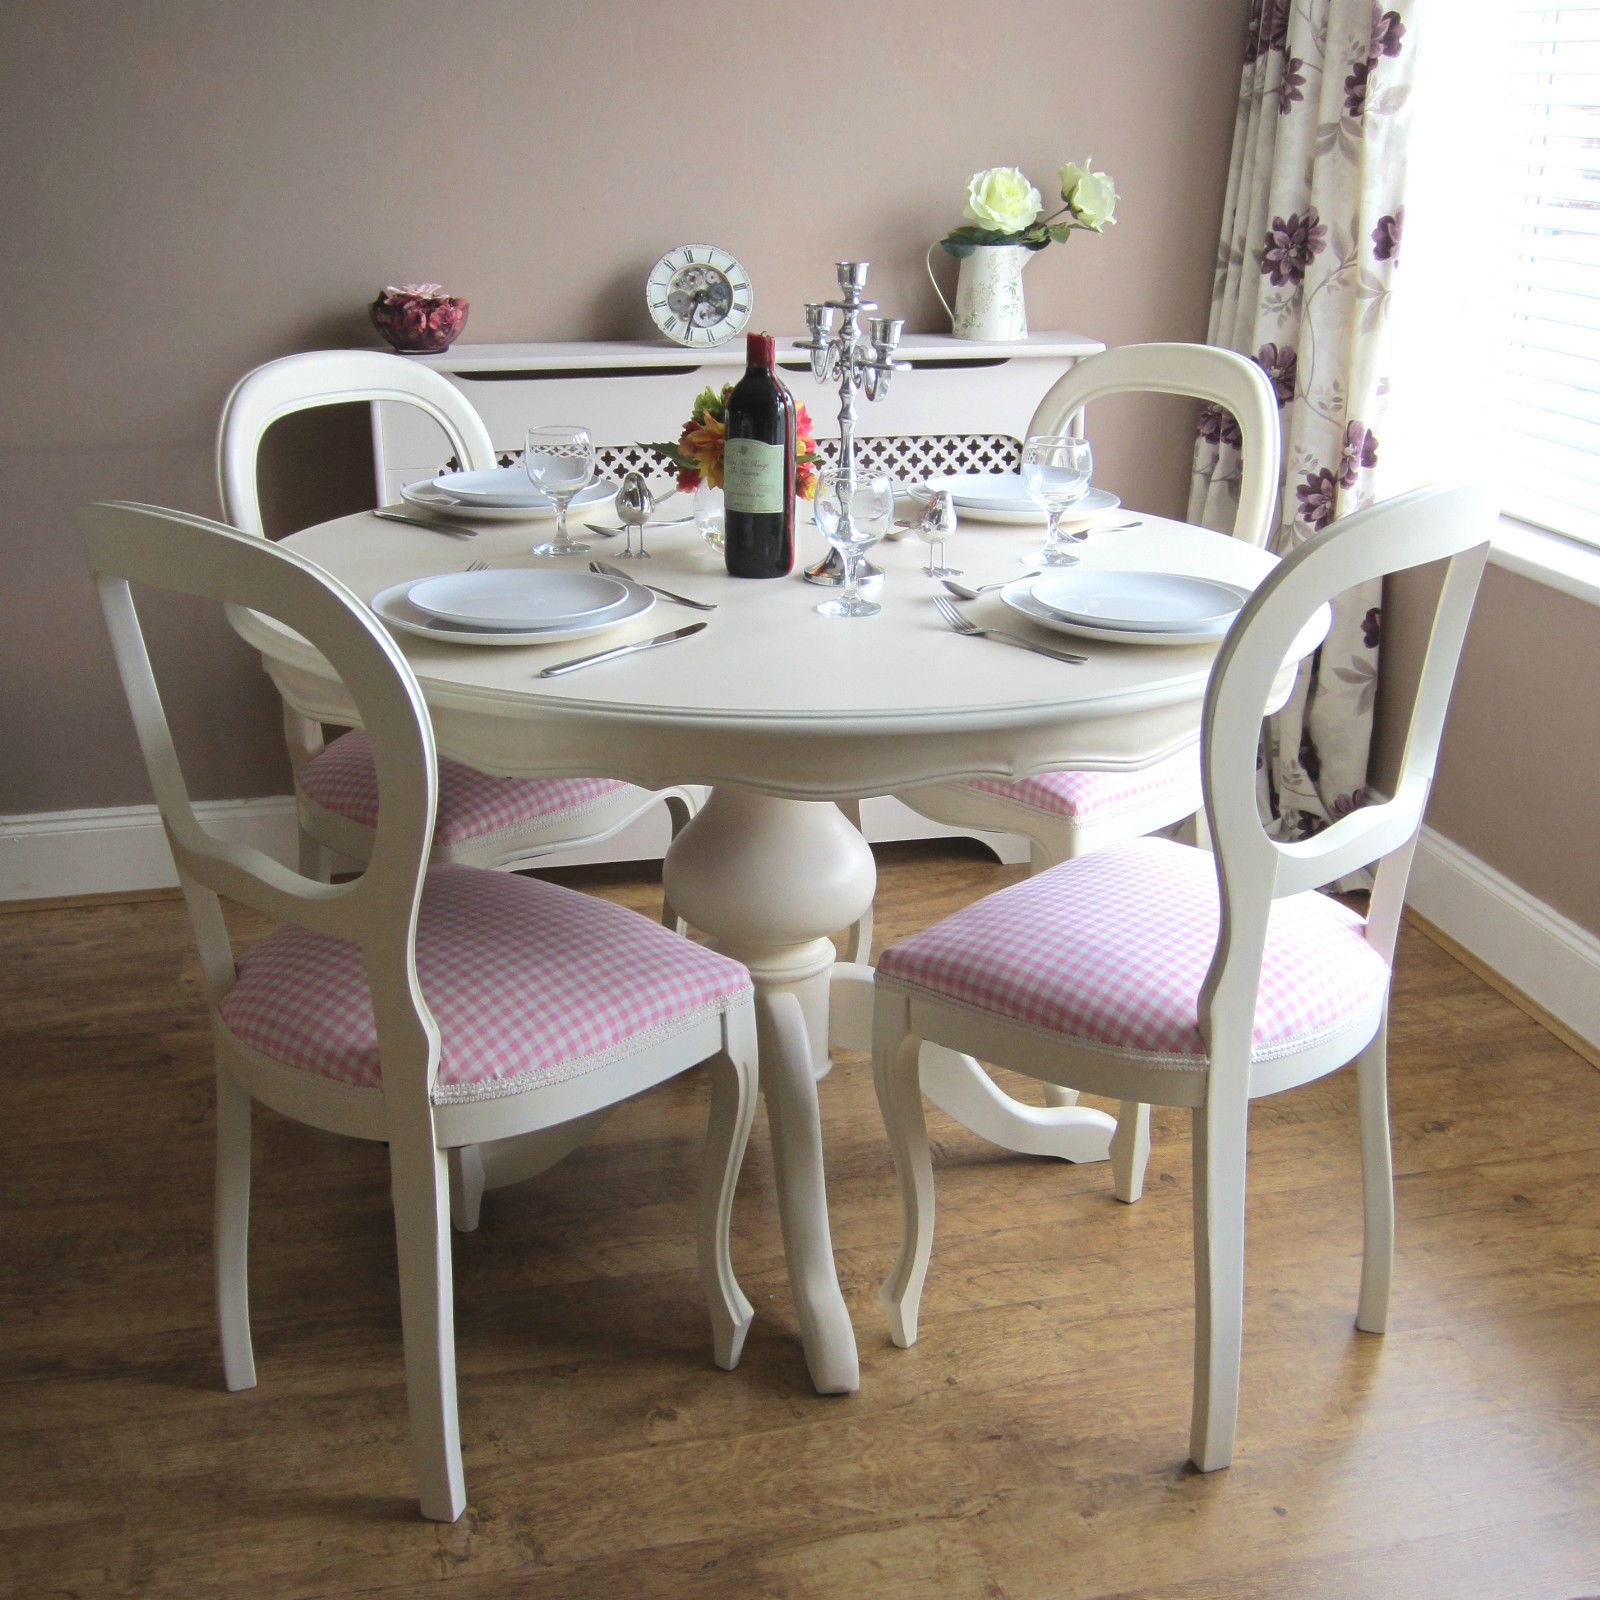 Simple Chic White Dining Room With Wooden Floor Pink Chairs And Round Kitchen